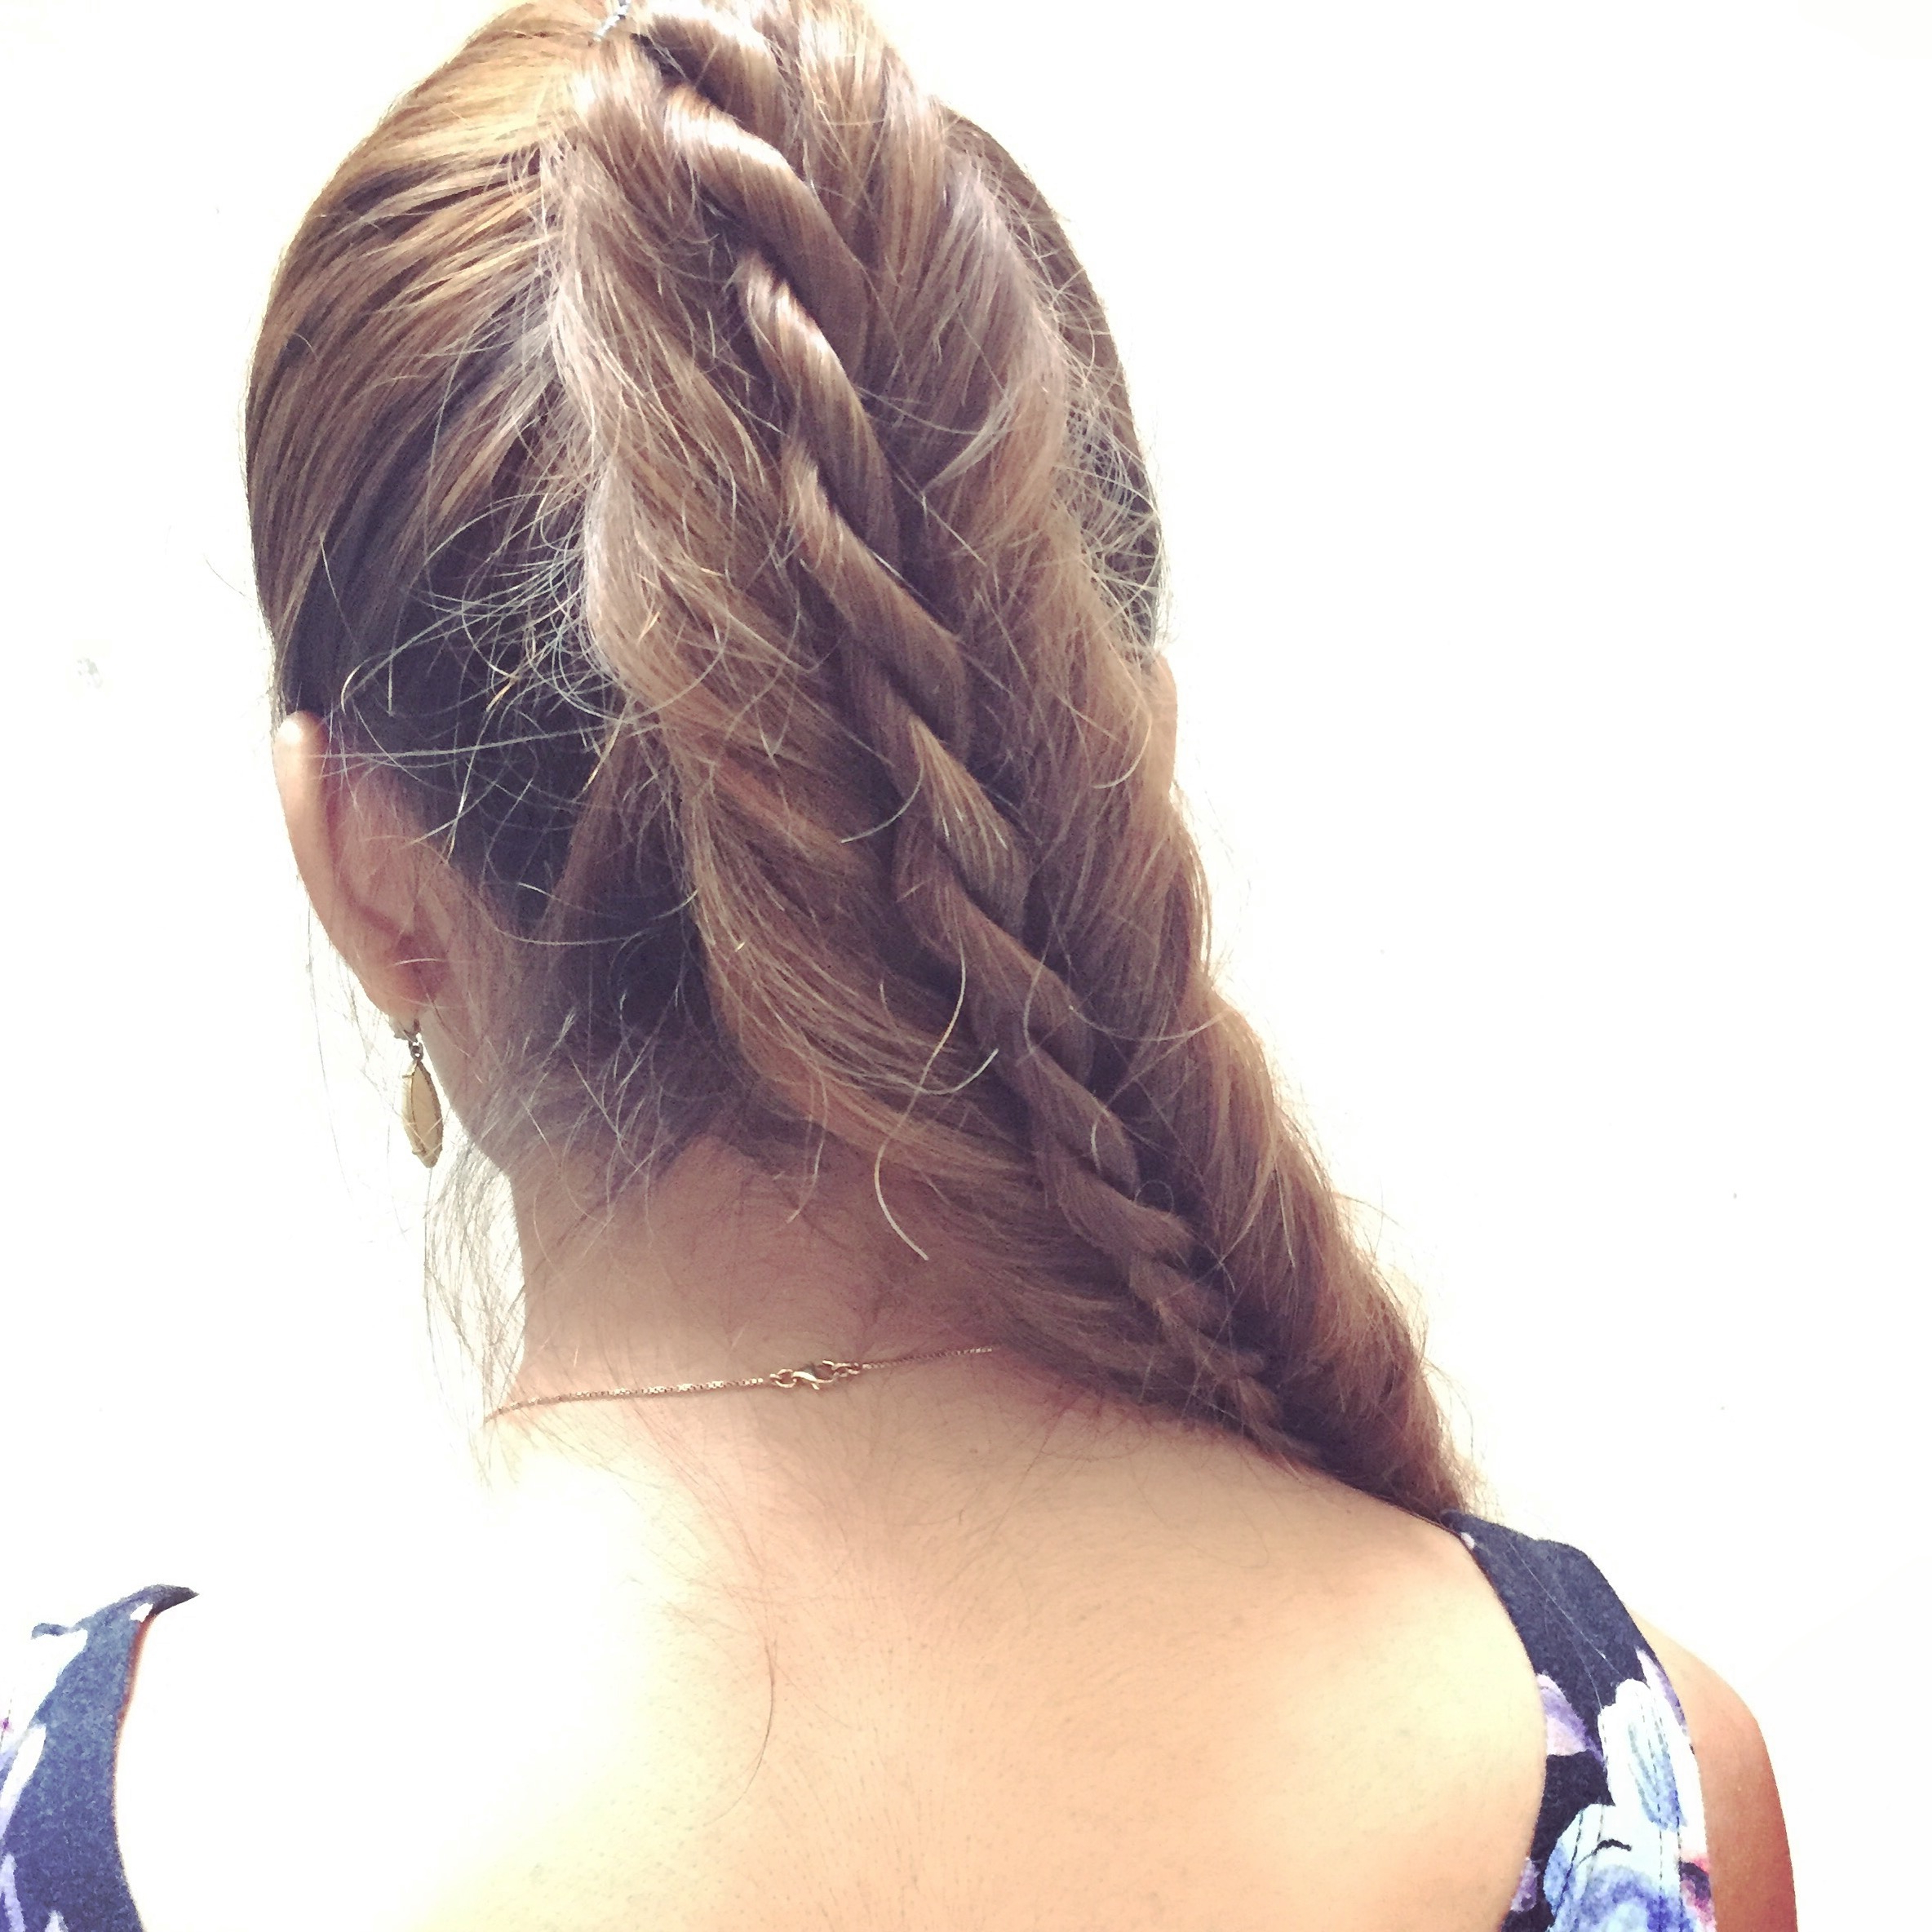 Tanvi Vayla » Fishtail+Rope Braid Ponytail Throughout Most Popular Rope And Fishtail Braid Hairstyles (Gallery 6 of 20)